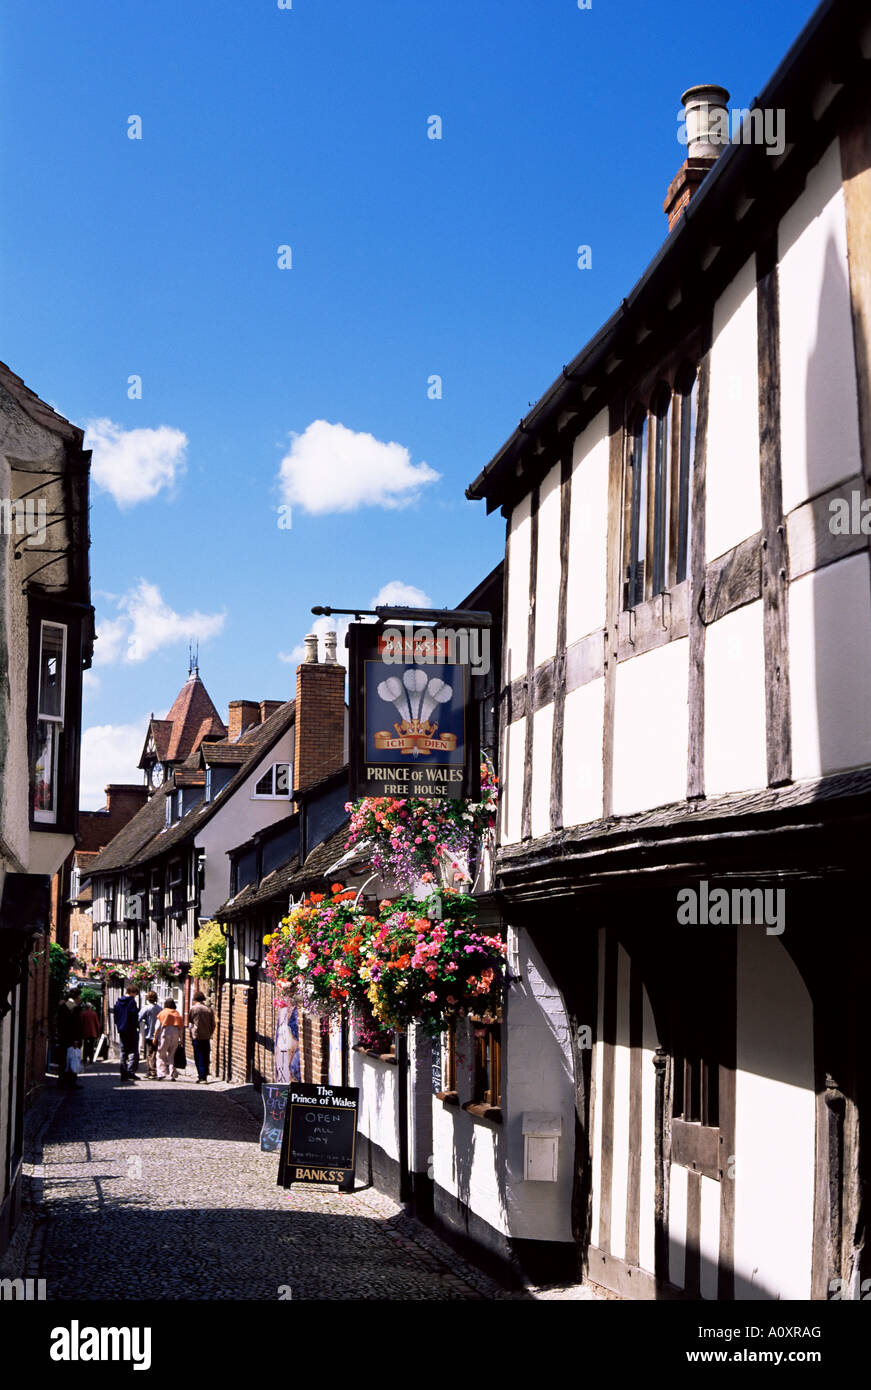 Church Lane Ledbury Herefordshire England United Kingdom Europe - Stock Image